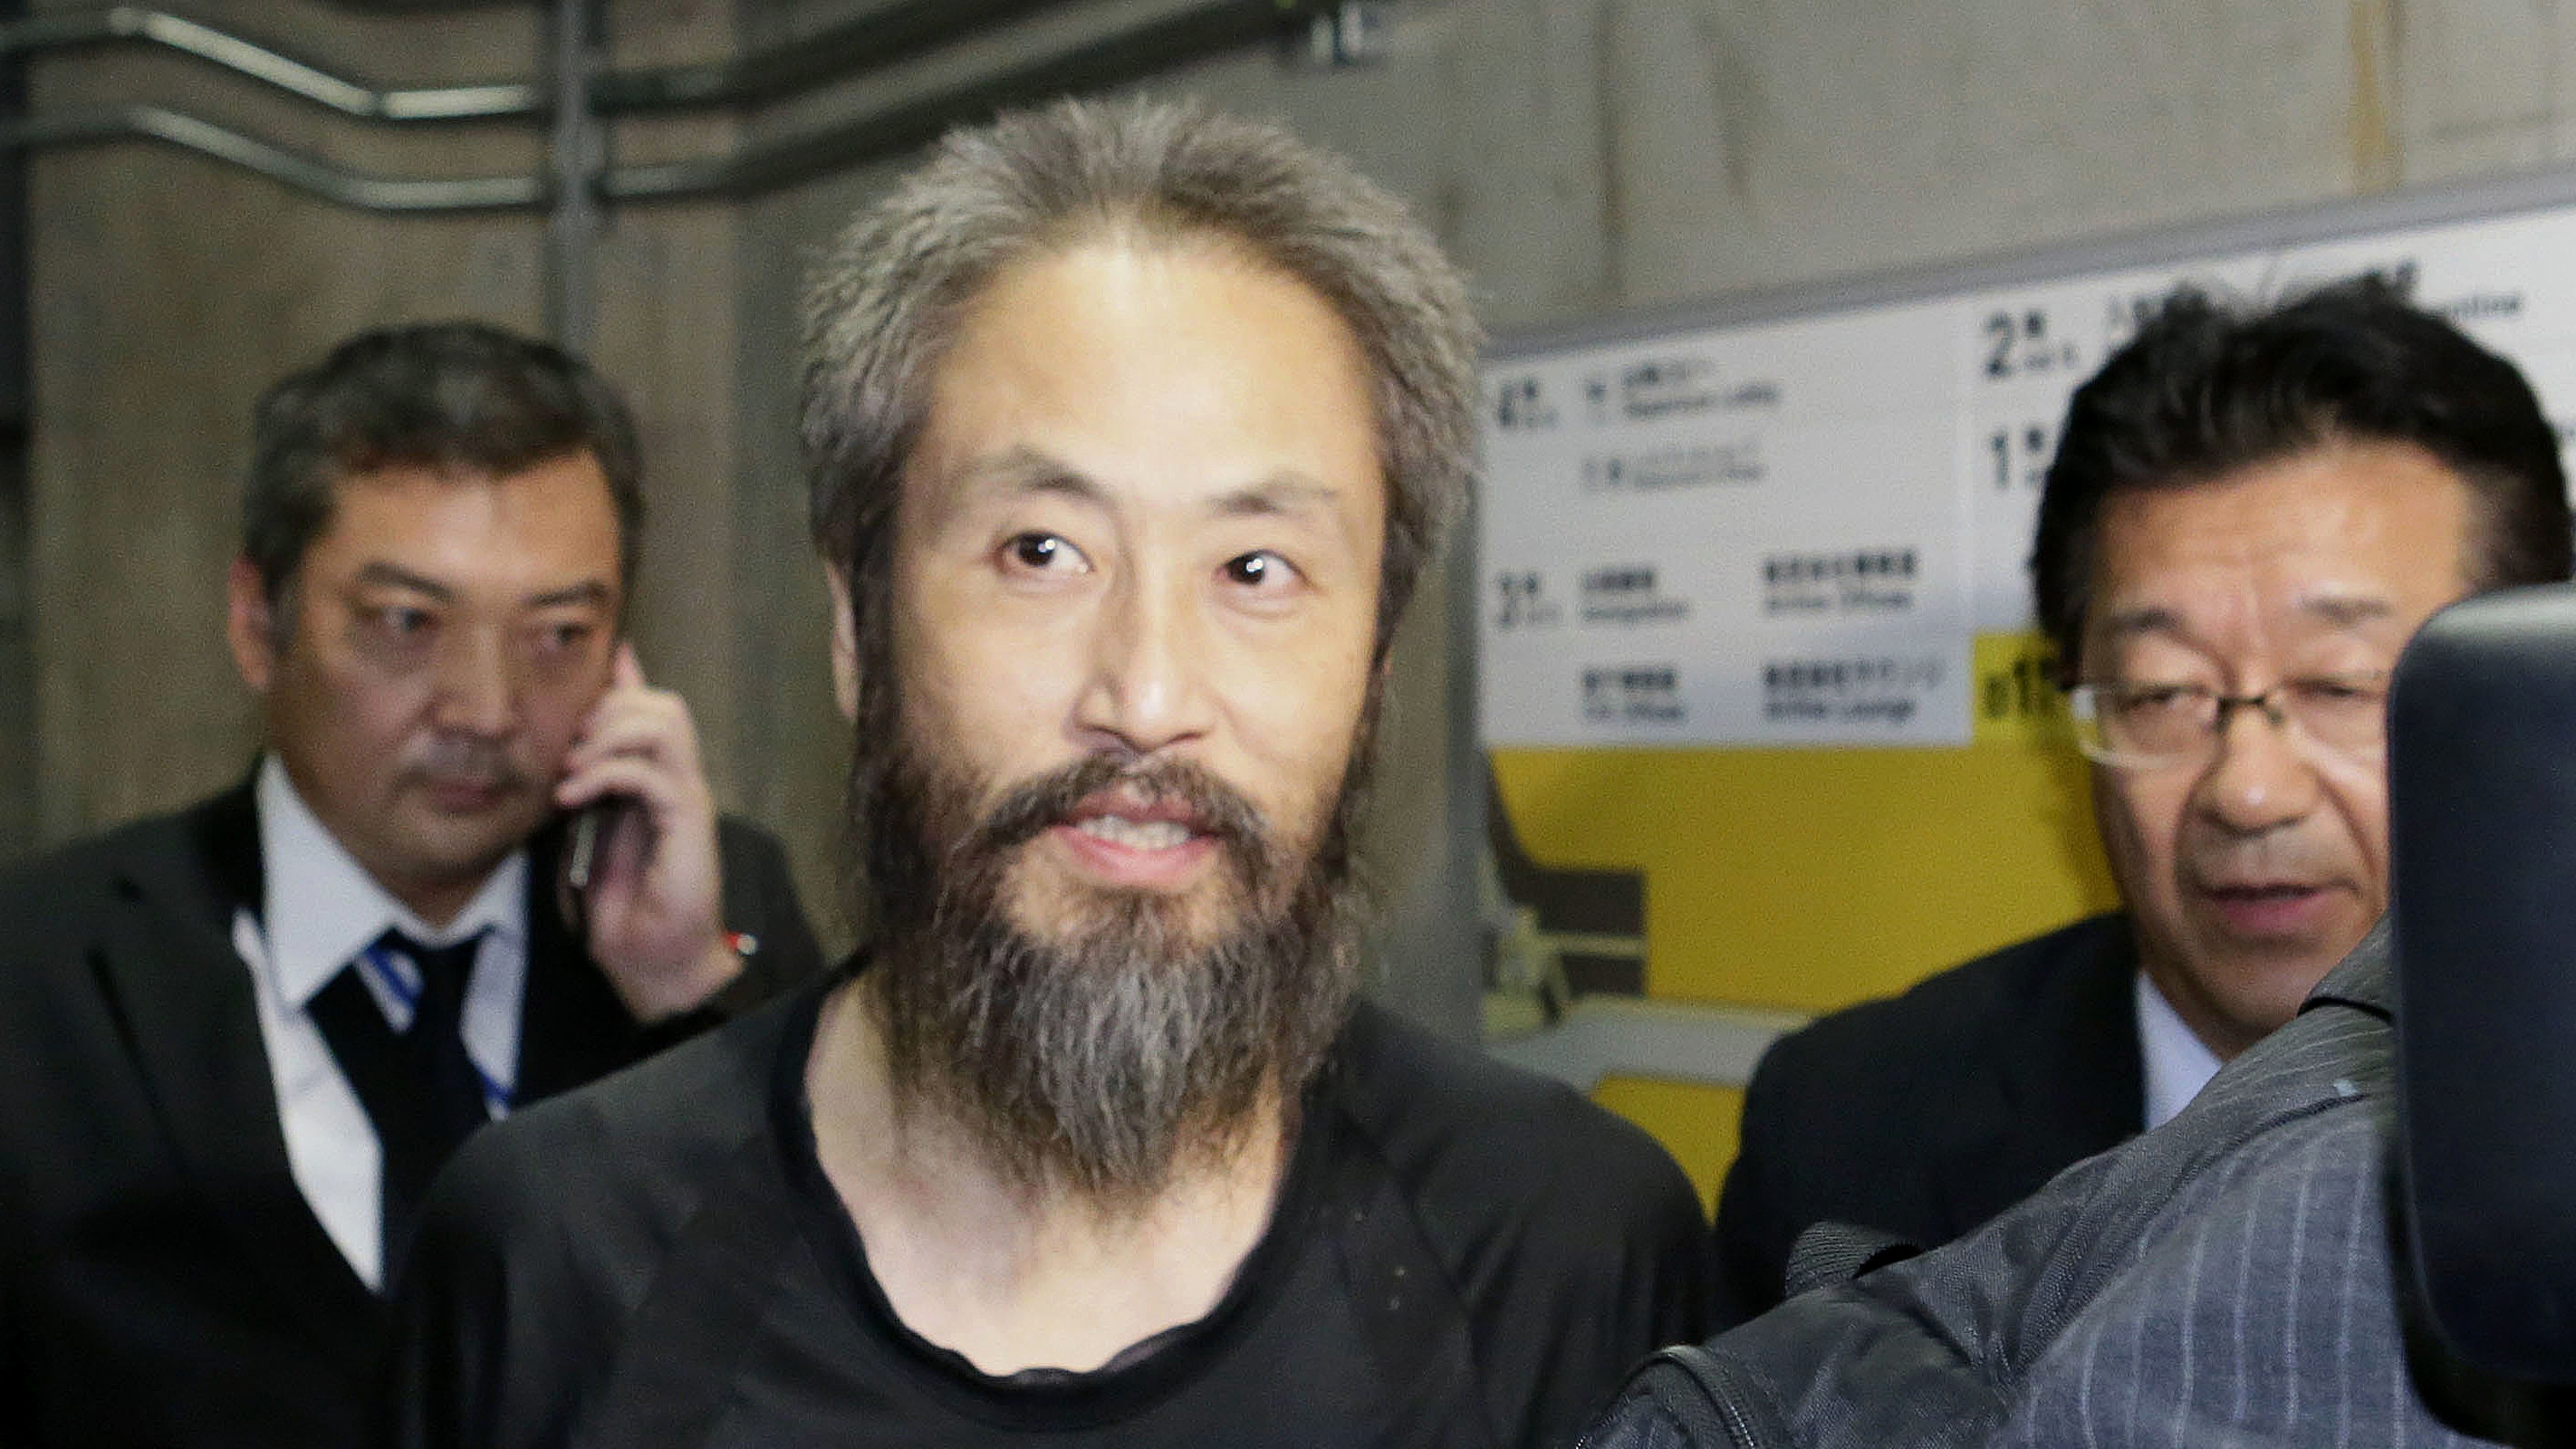 Japanese journalist freed from Syria happy to be home after 'hell'